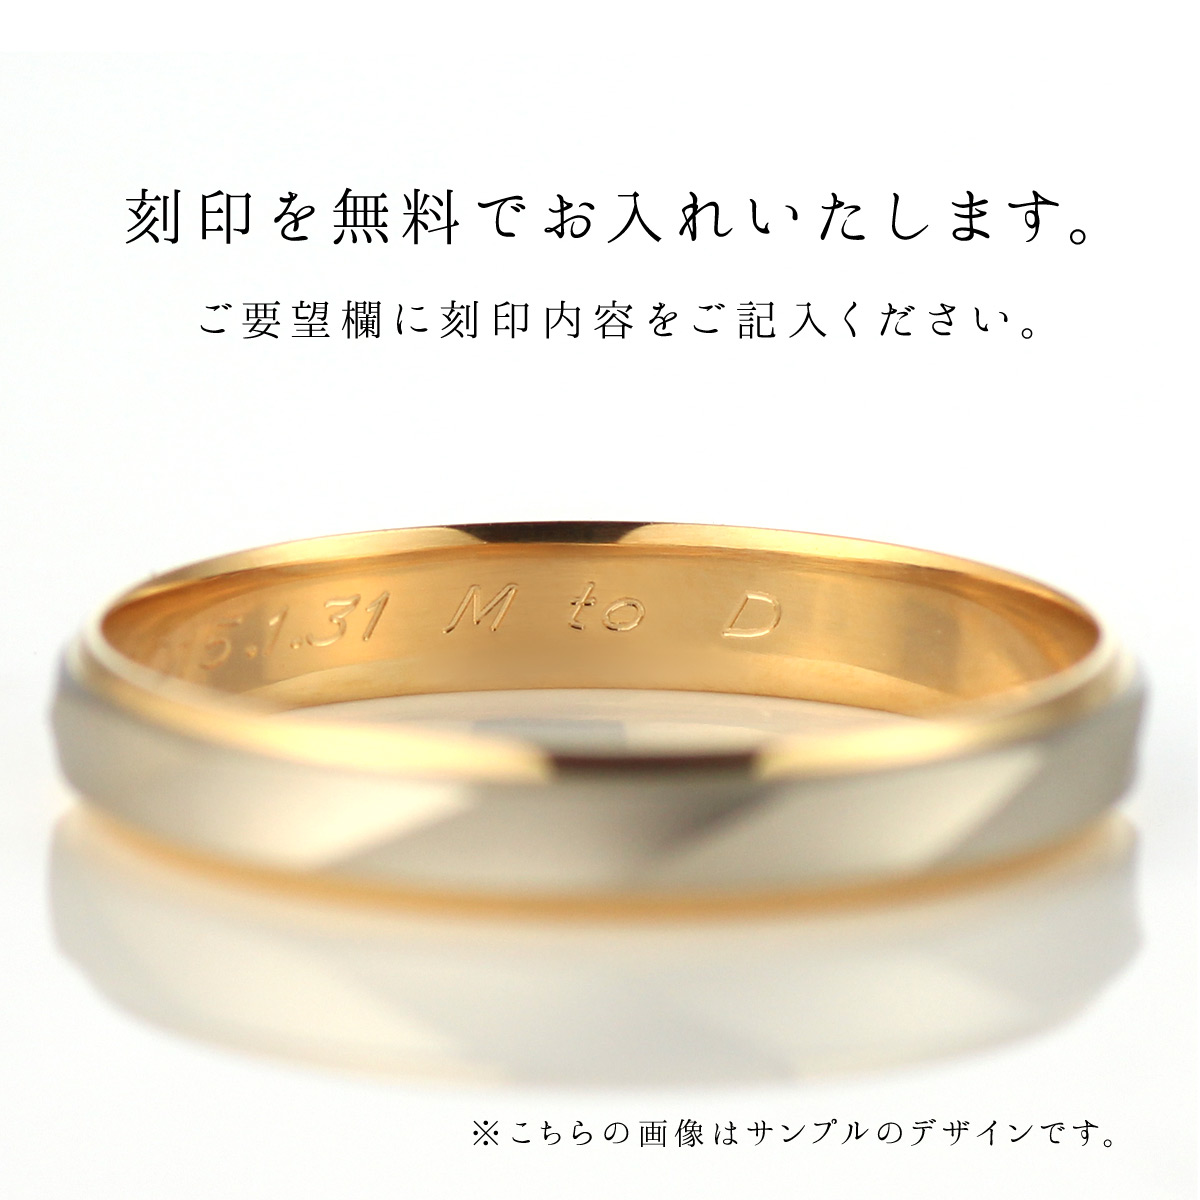 Wedding ring wedding ring Platinum pairing ♪ monogrammed Gold Platinum rings wedding Bridal jewelry as a popular pair ring rings.